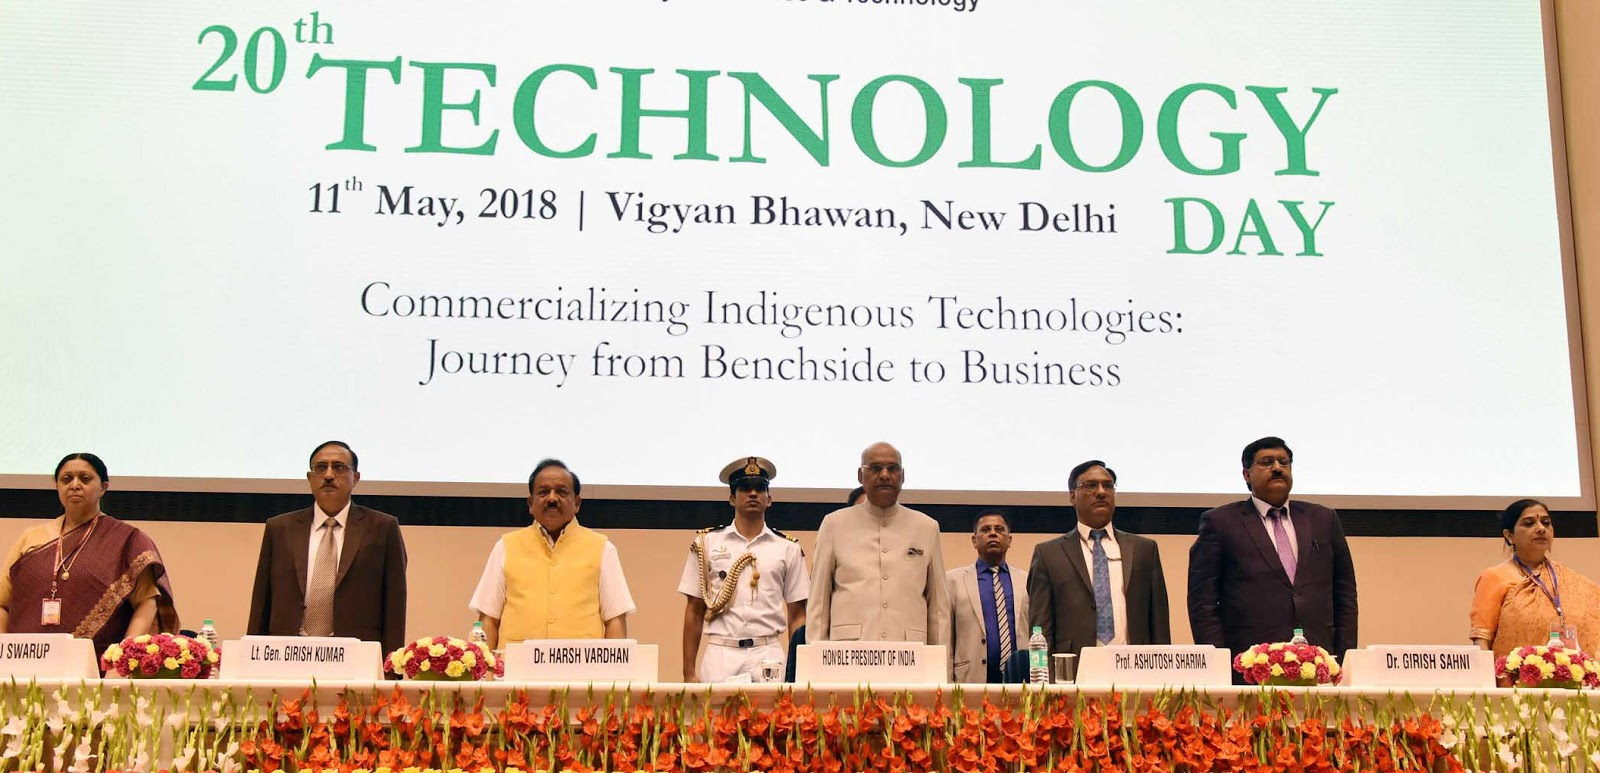 20th technology day